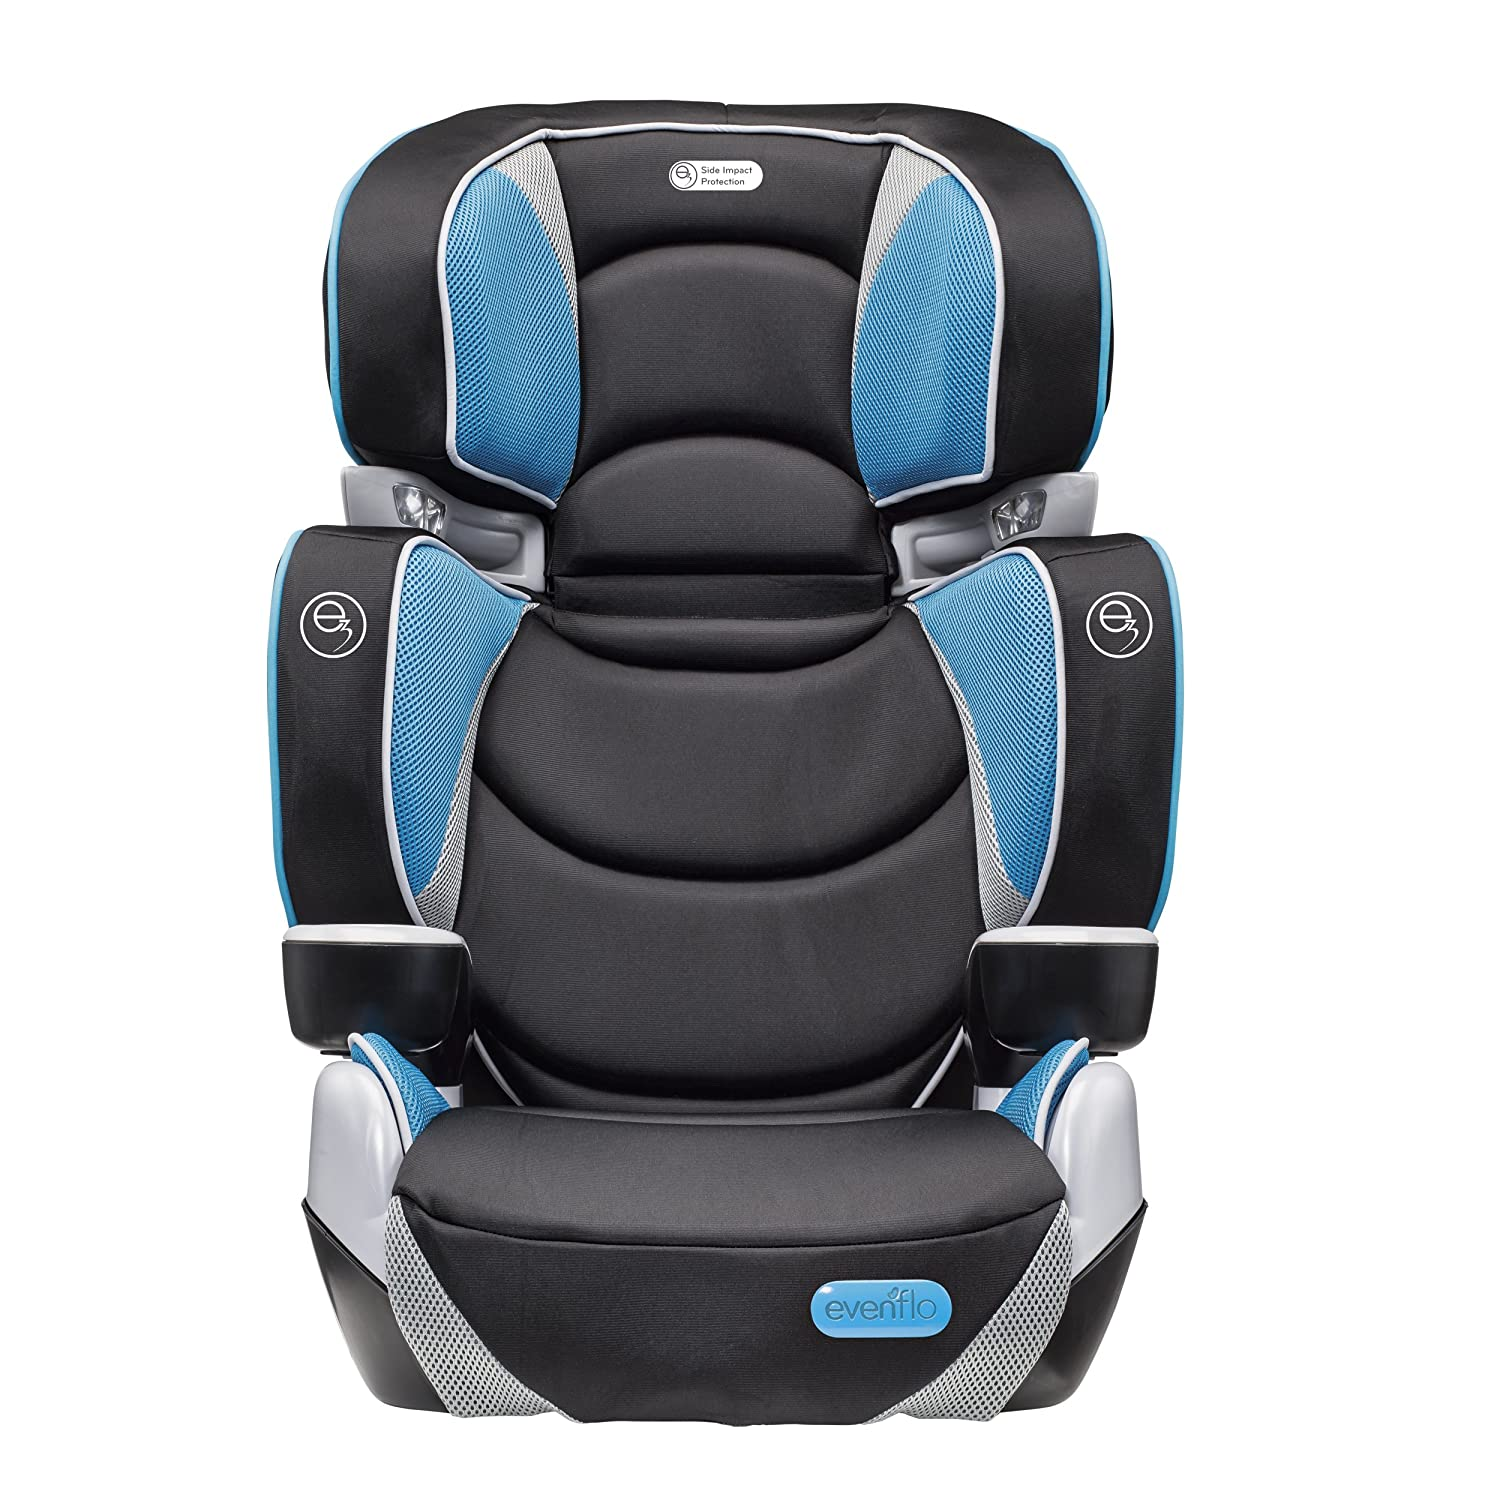 Evenflo Rightfit Booster Car Seat, Capri 31321500